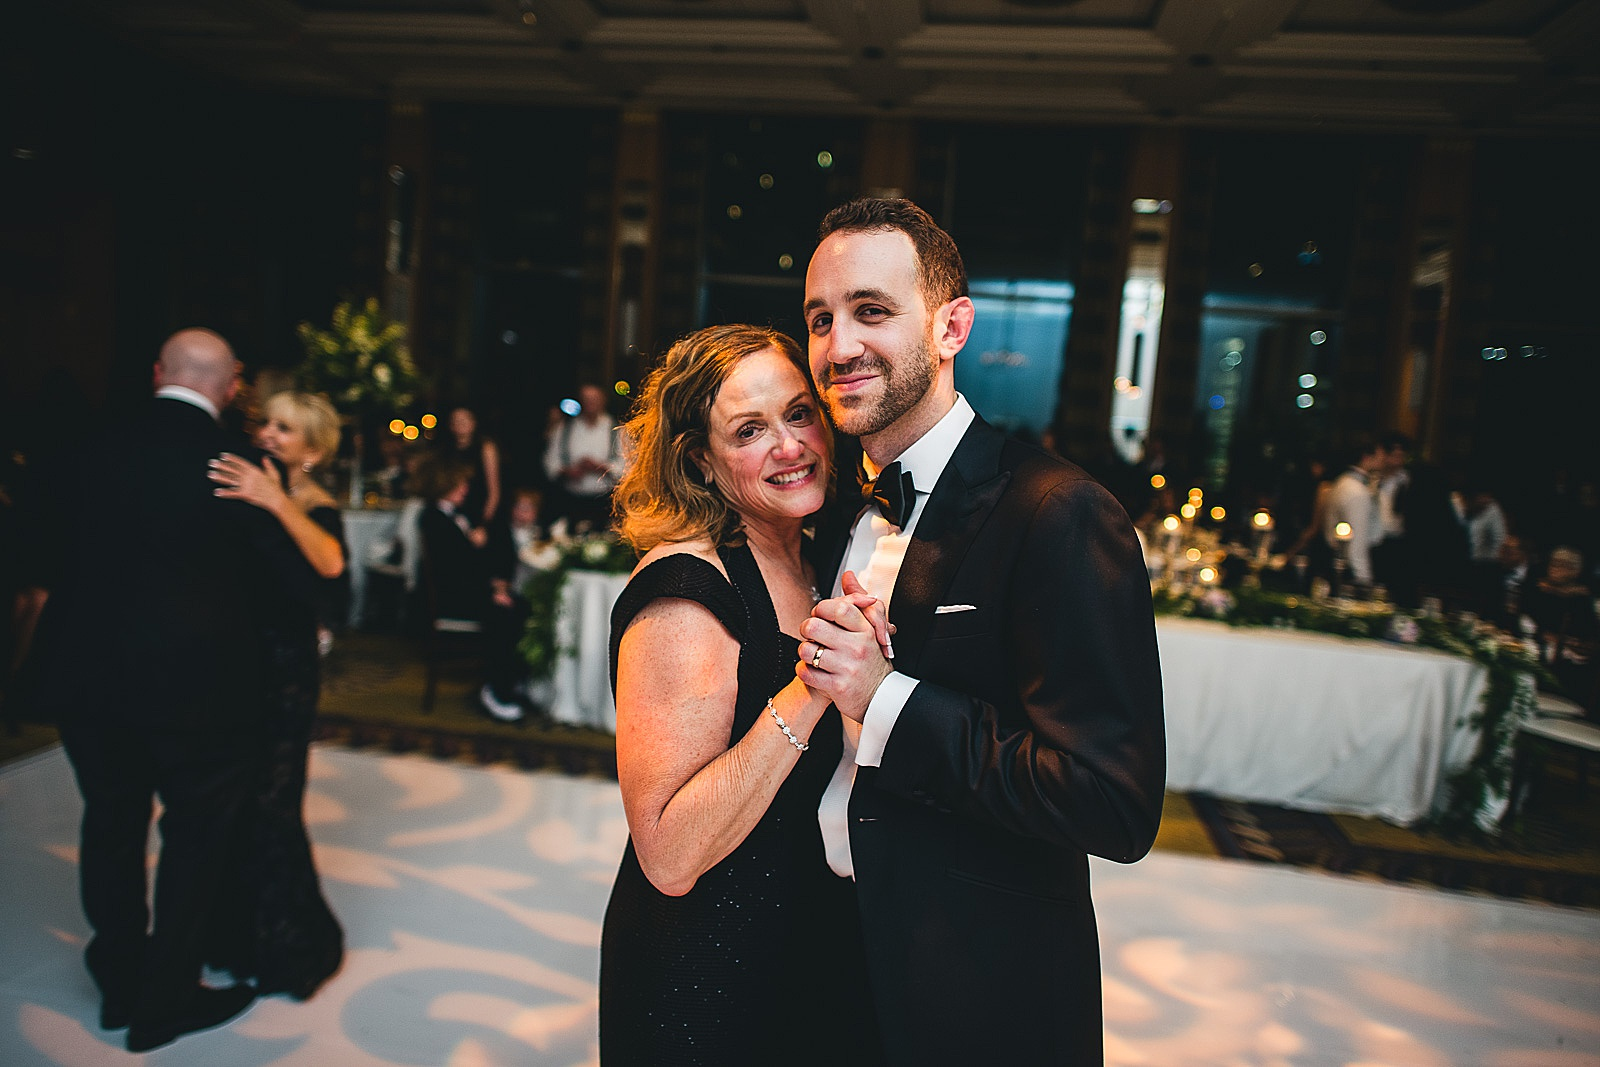 67 mother son dance at wedding - Susie + Eric's Jewish Wedding at the Peninsula Hotel in Chicago